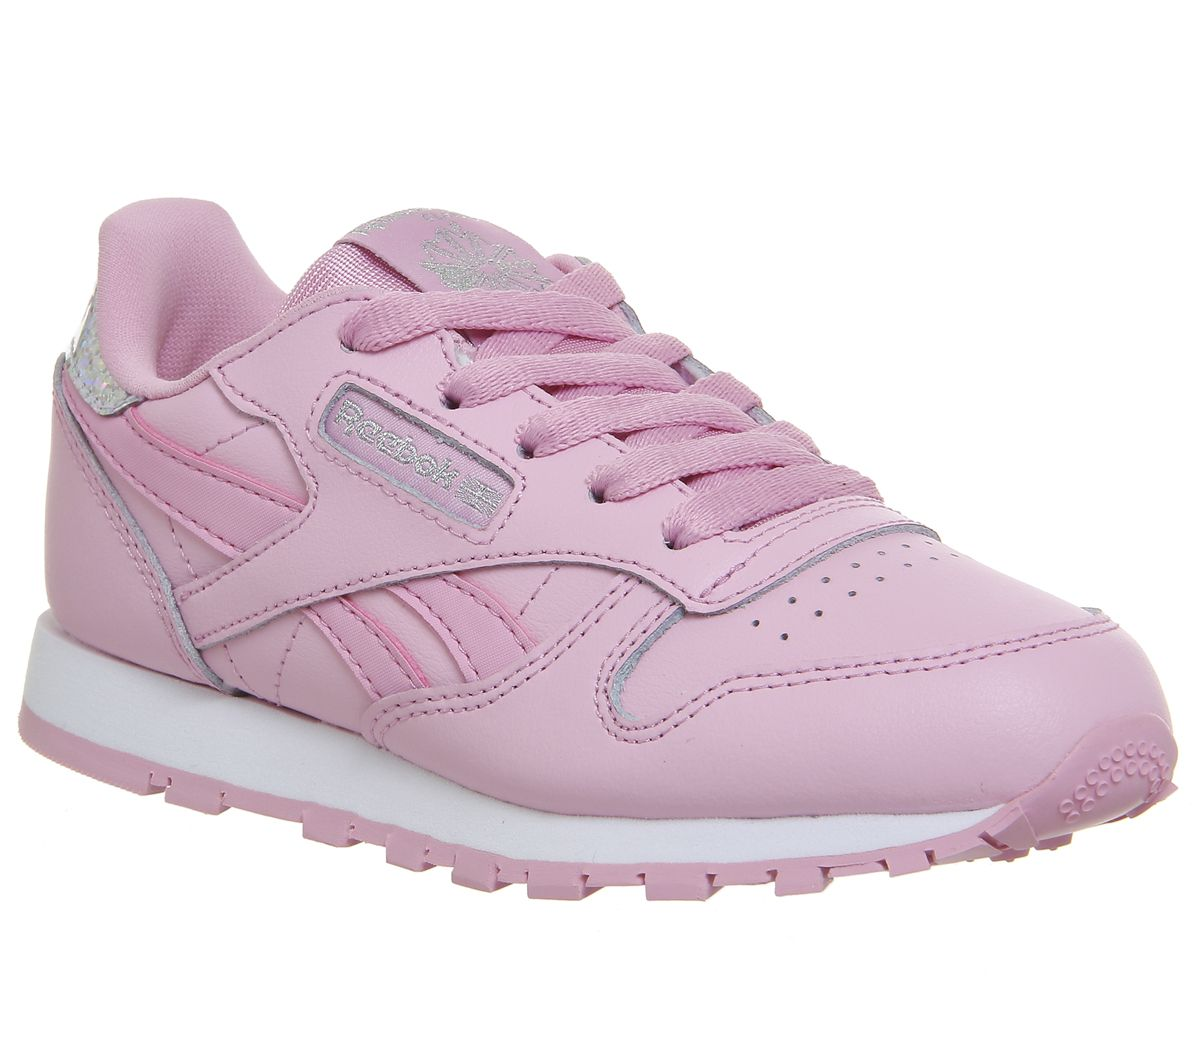 fa0f7e48993 Reebok Classic Leather Ps Pastel Charming Pink Glow - Unisex